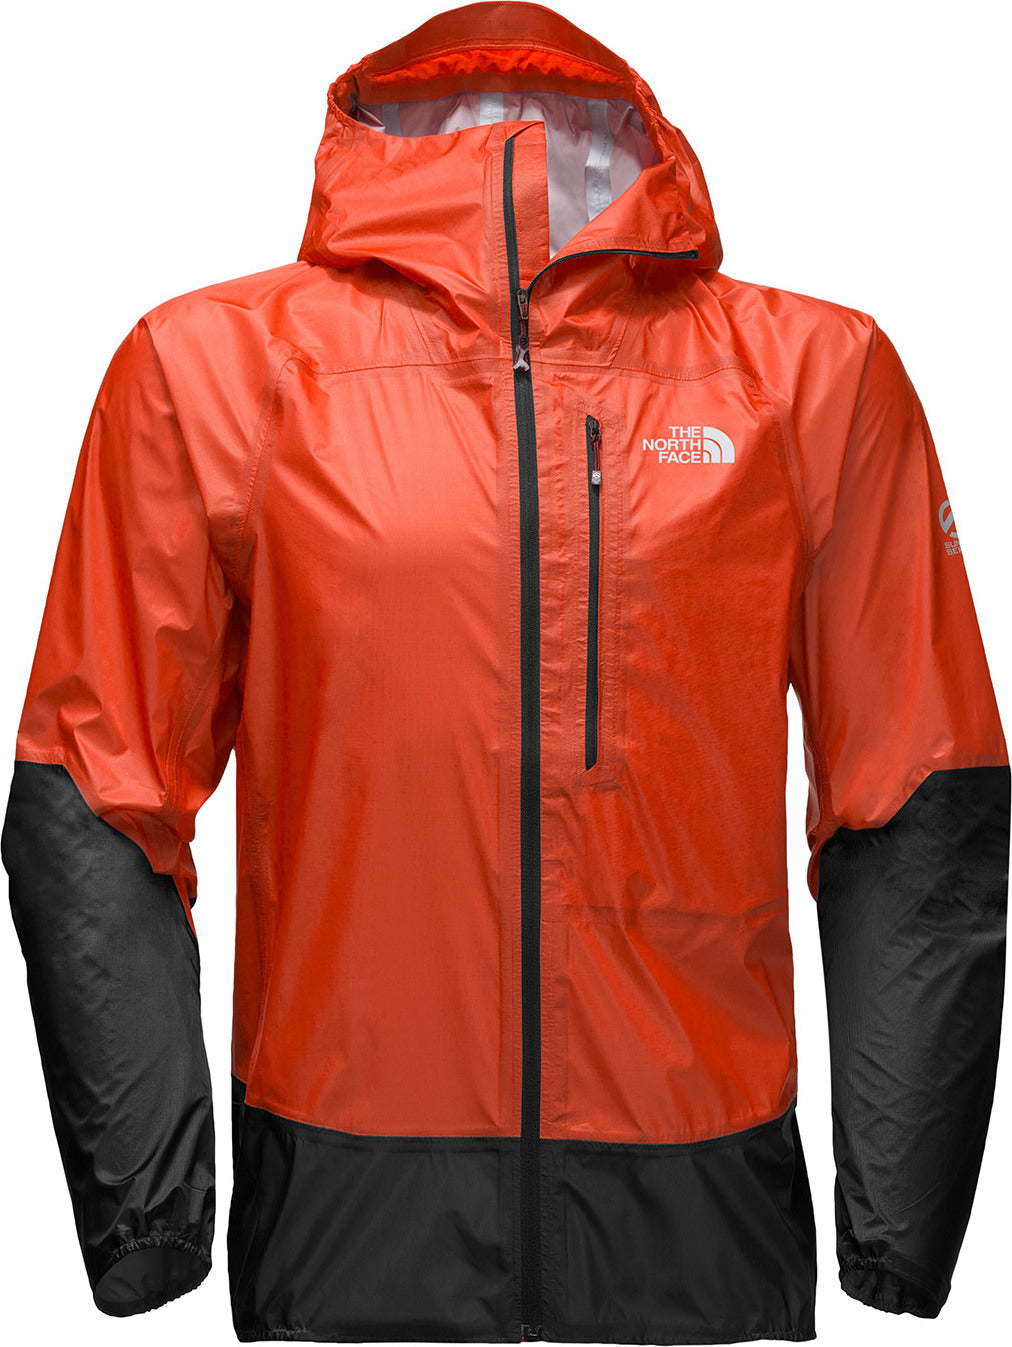 9f7d8f8d The North Face Summit L5 Ultralight Storm Jacket - Men's | Altitude ...